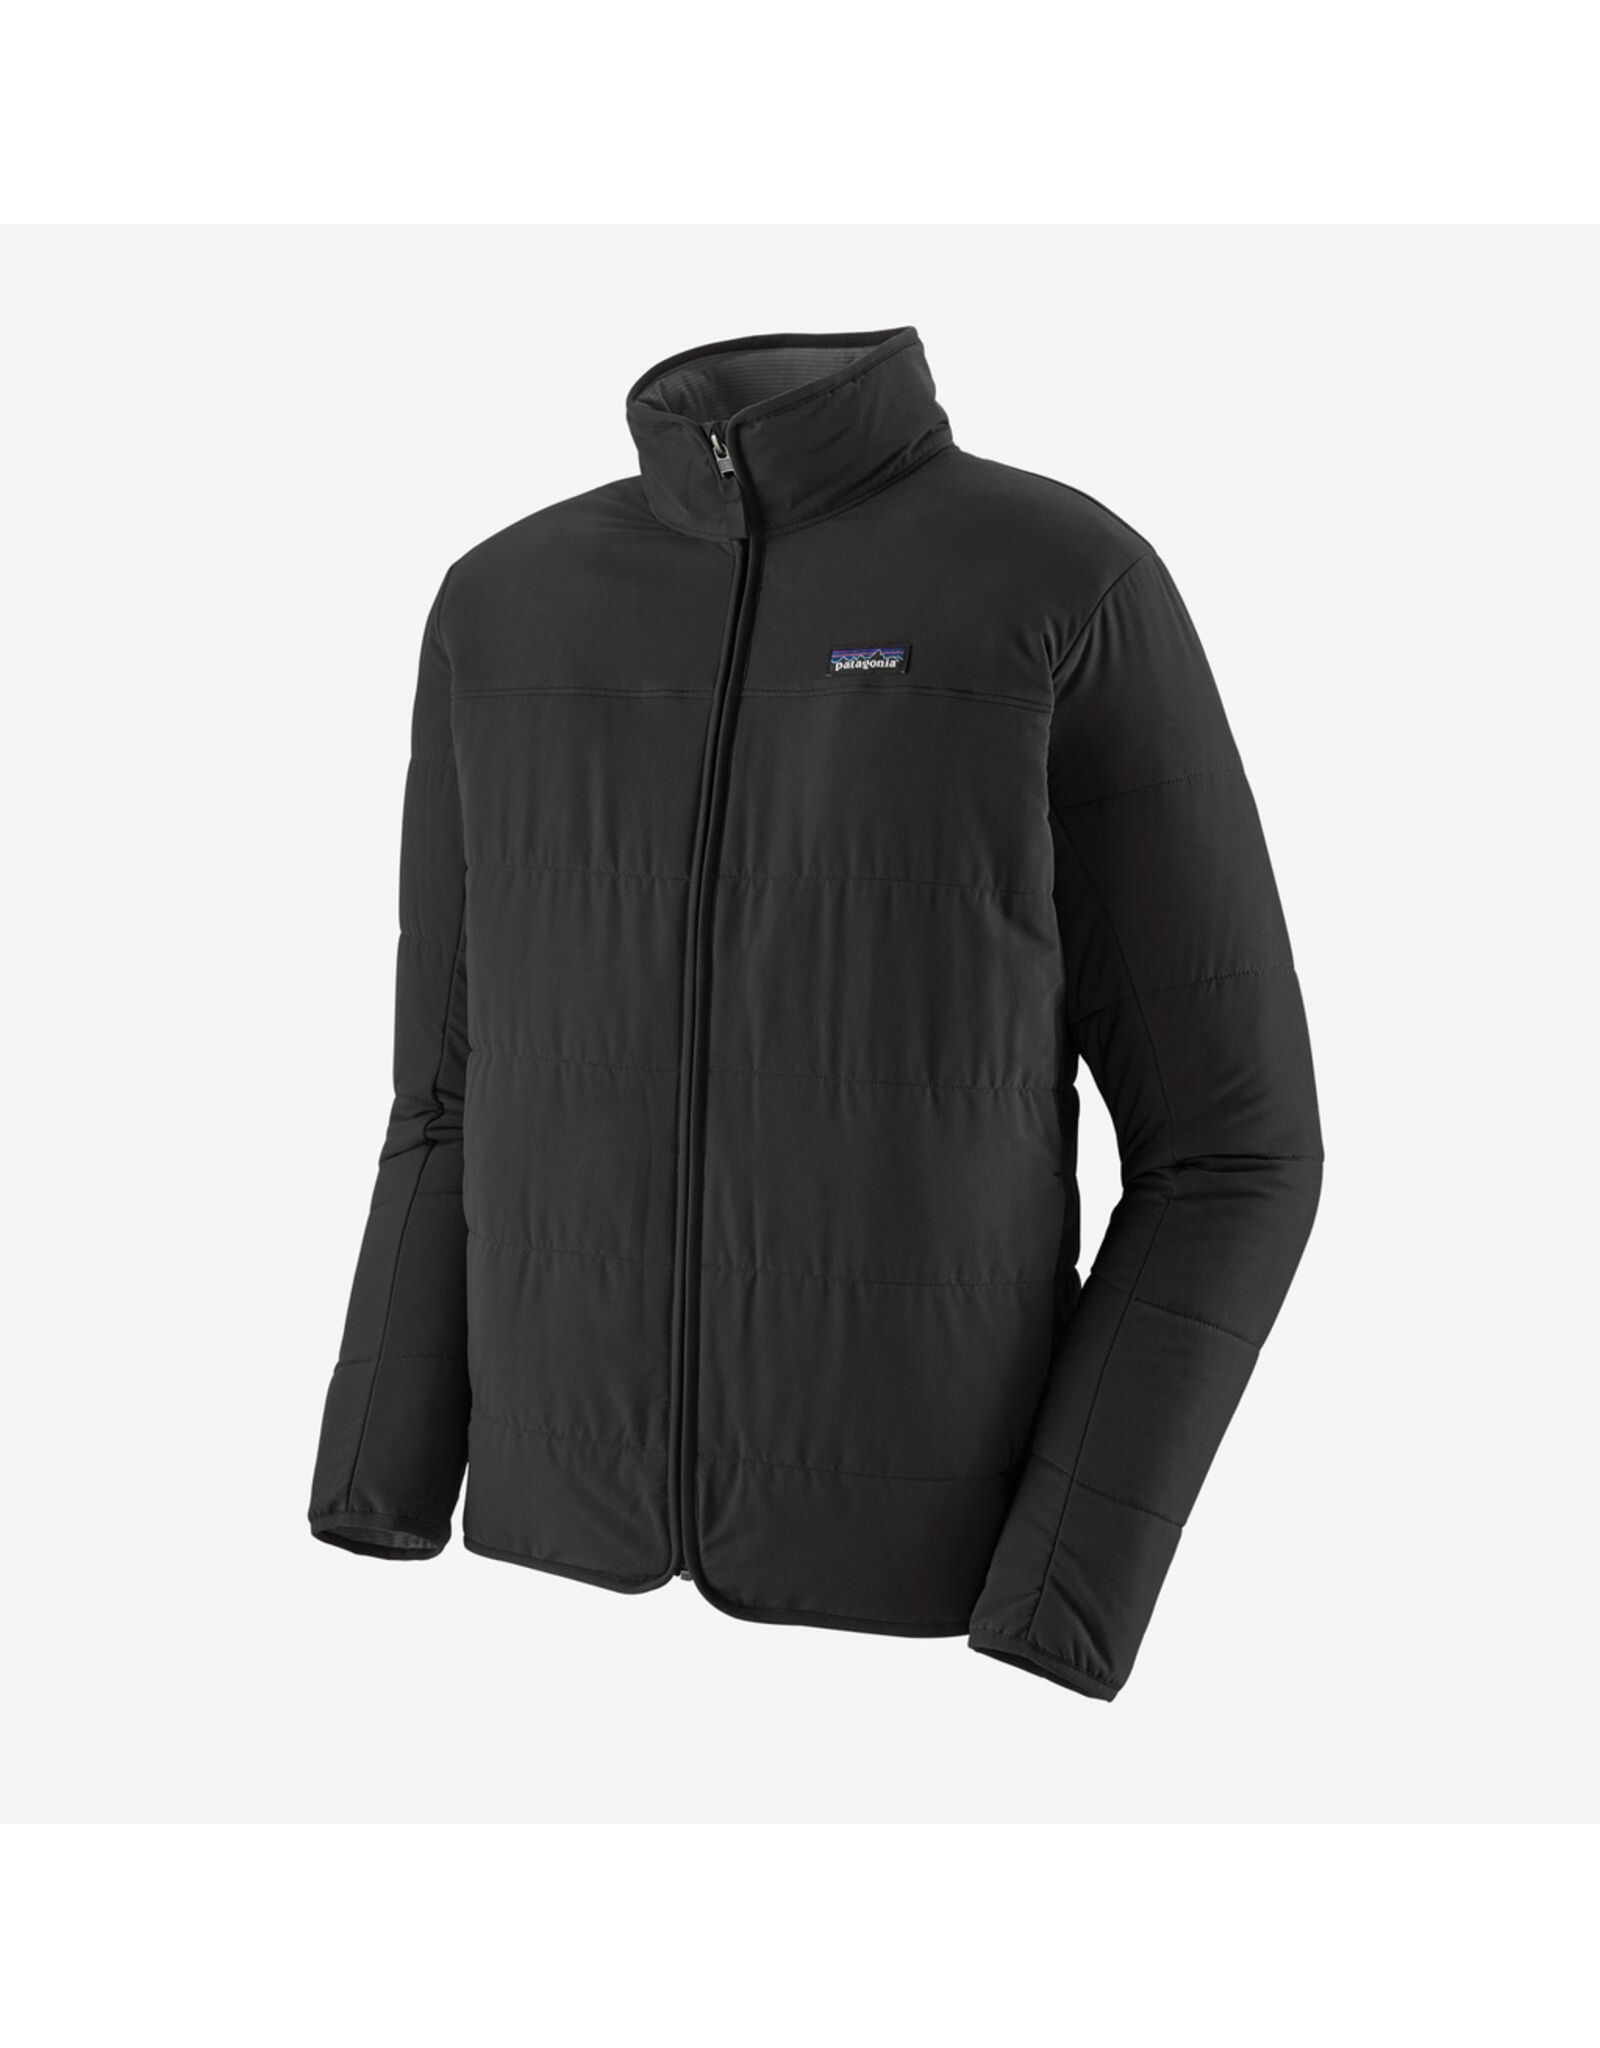 Patagonia Men's Pack In Jacket. Ink Black